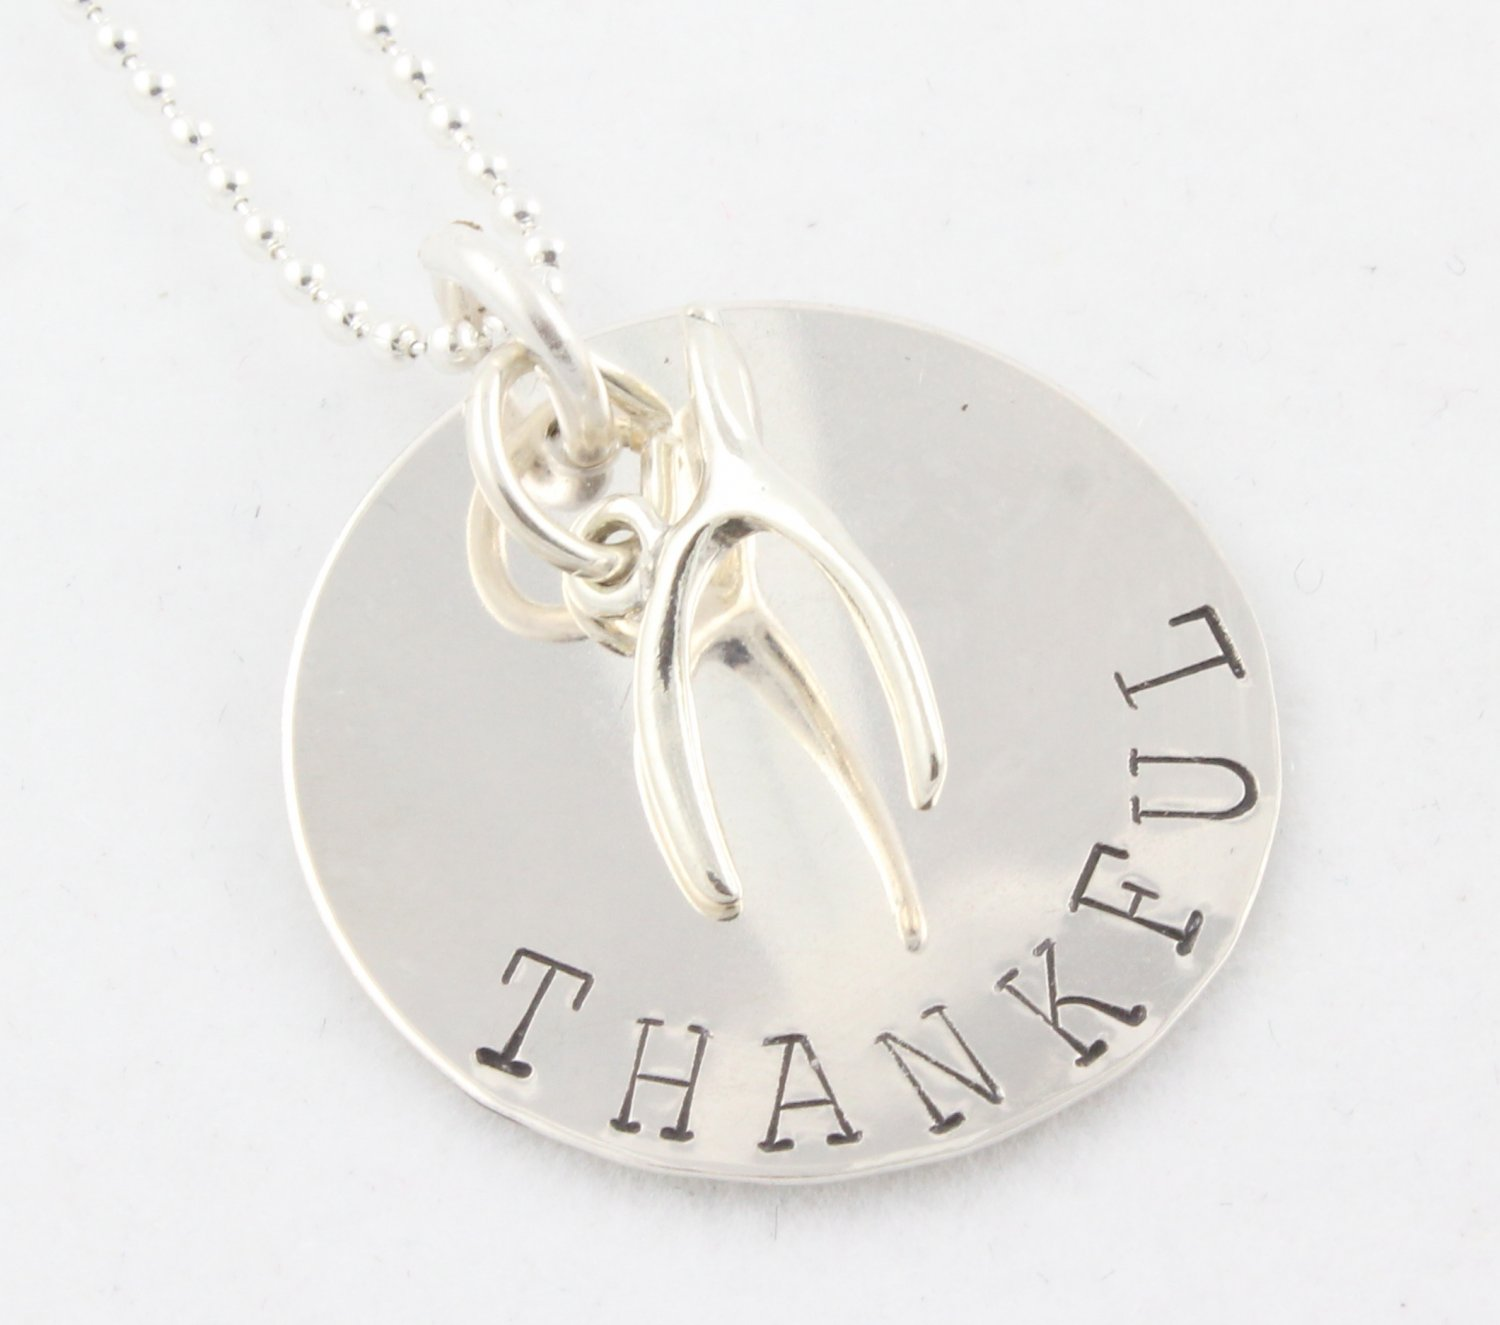 THANKFUL WISH WISHBONE Hand Stamped Sterling Silver Necklace N091